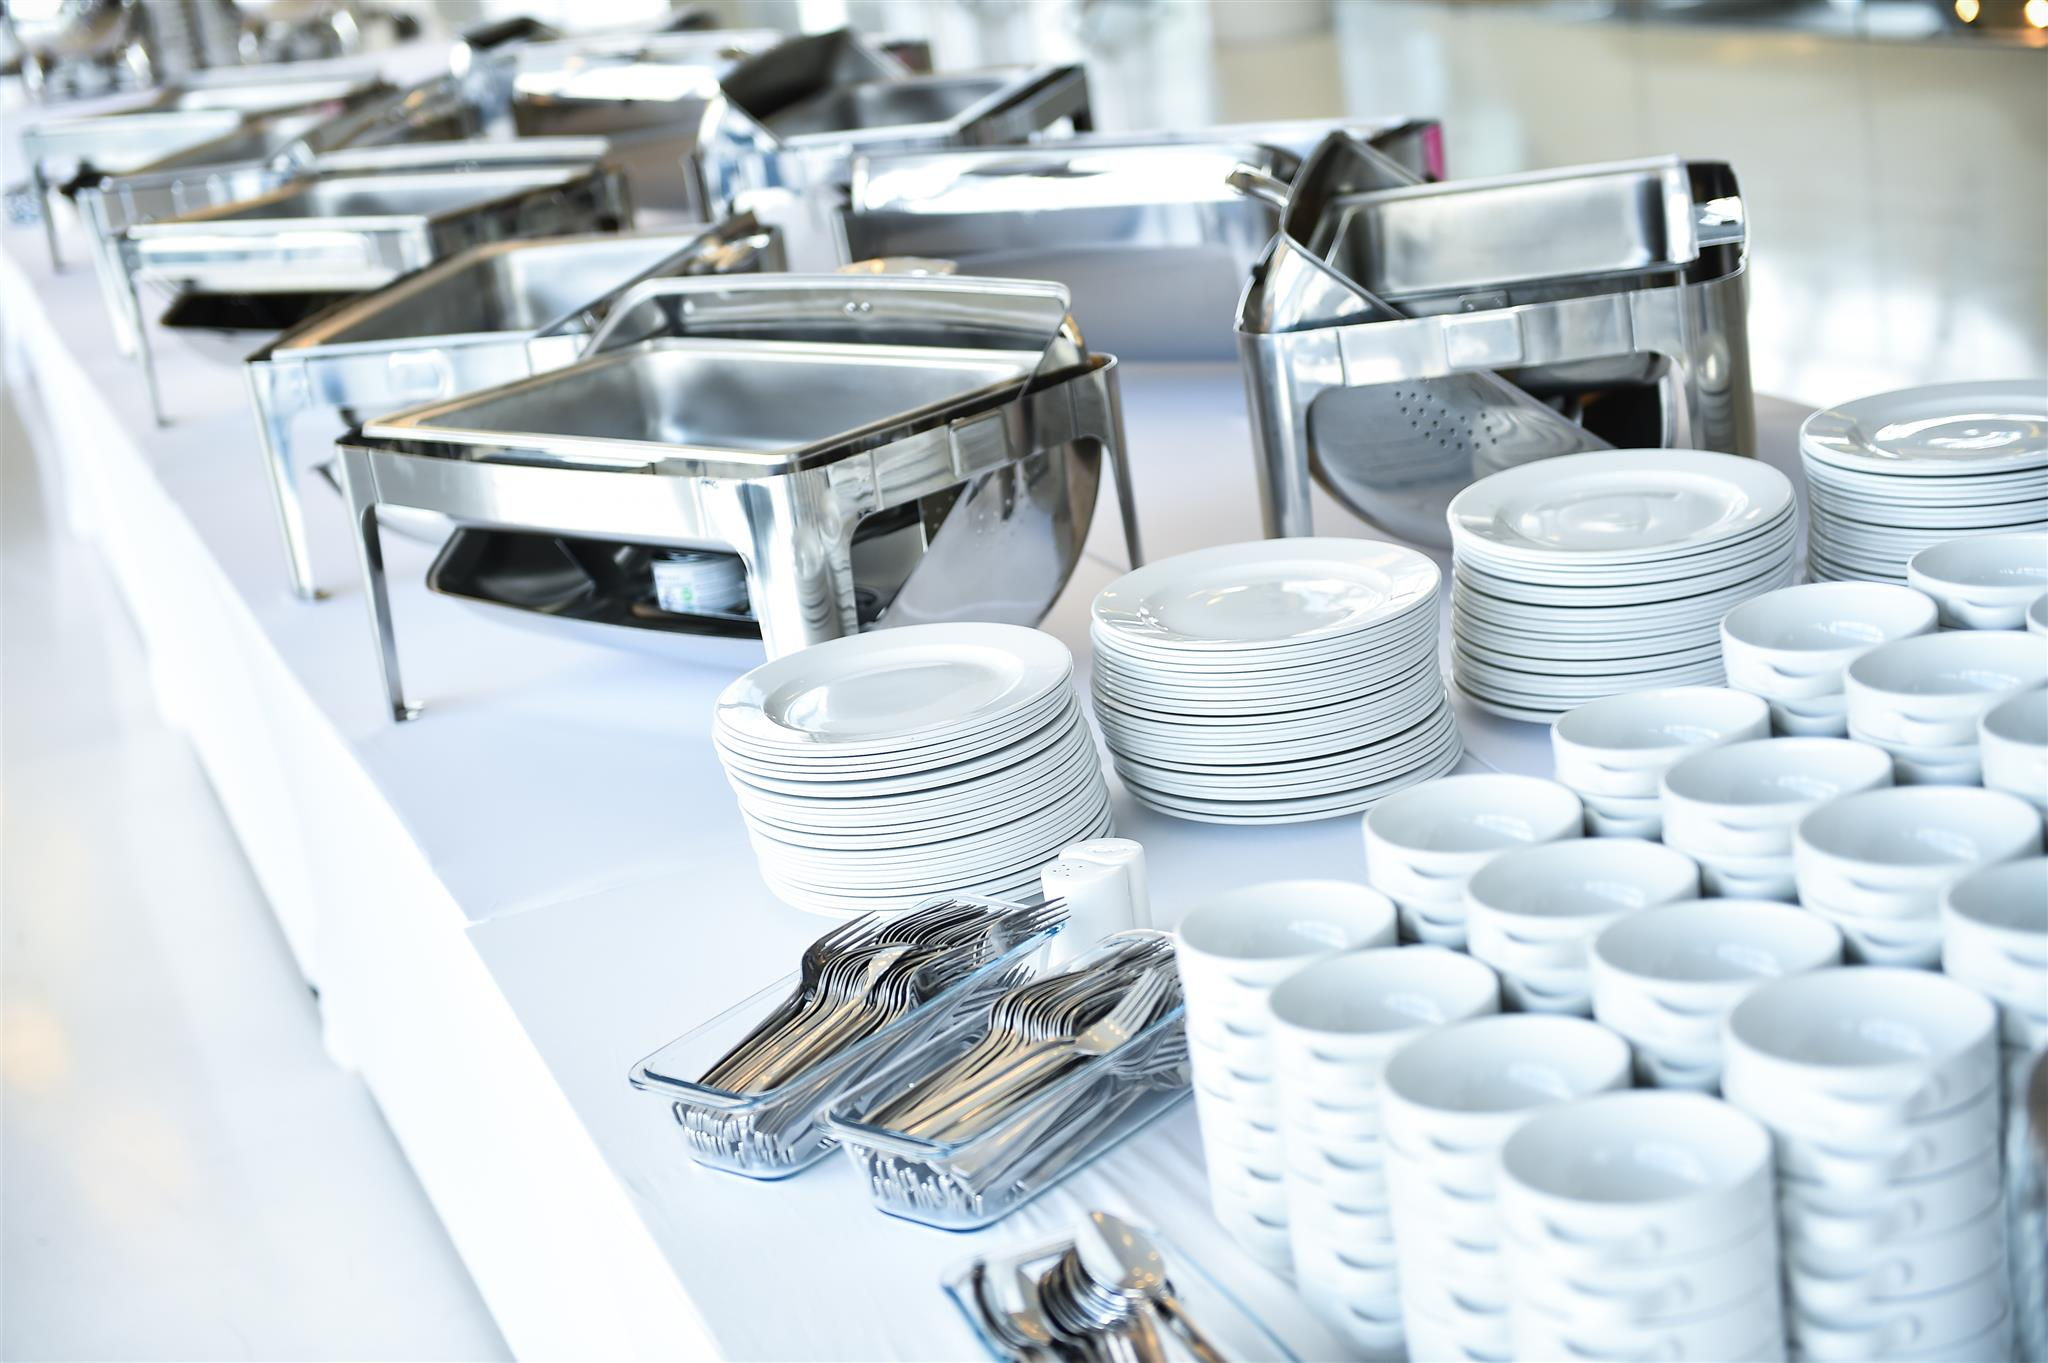 Common Catering Equipment Needed for all Types of Event